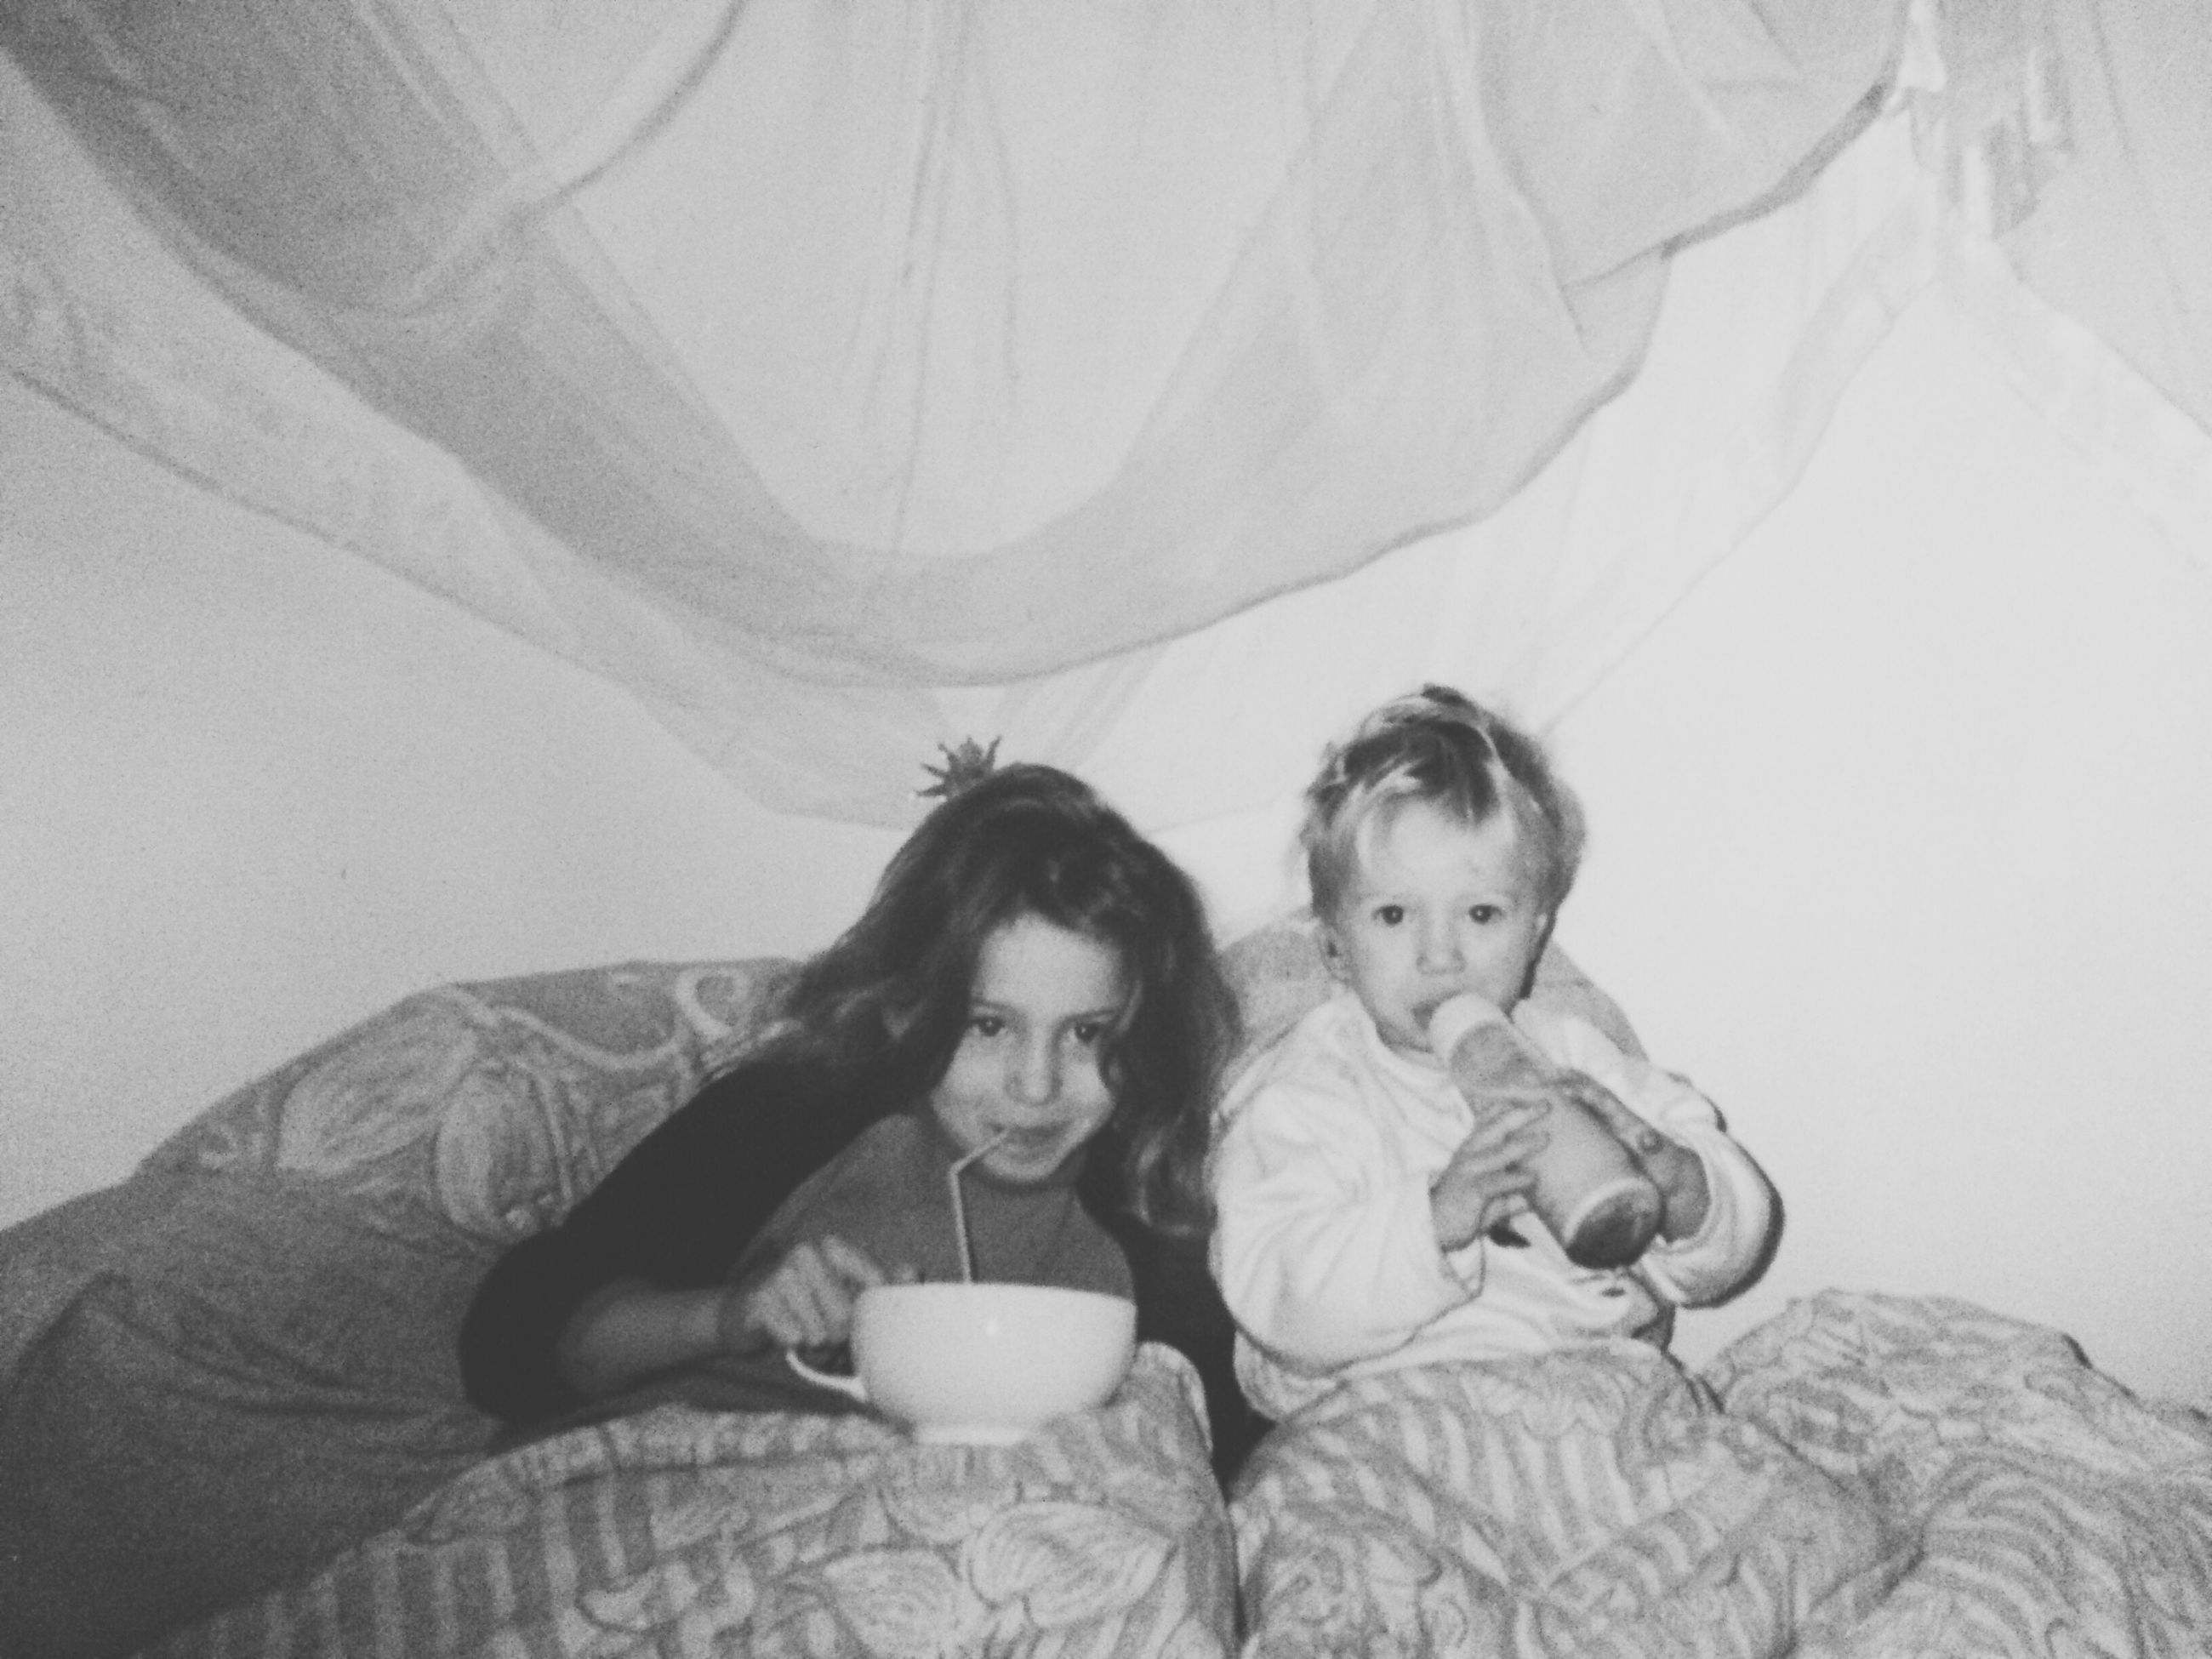 childhood, girls, togetherness, two people, indoors, food and drink, leisure activity, looking at camera, lifestyles, holding, elementary age, drink, sibling, bed, portrait, bonding, real people, young women, young adult, bedroom, day, people